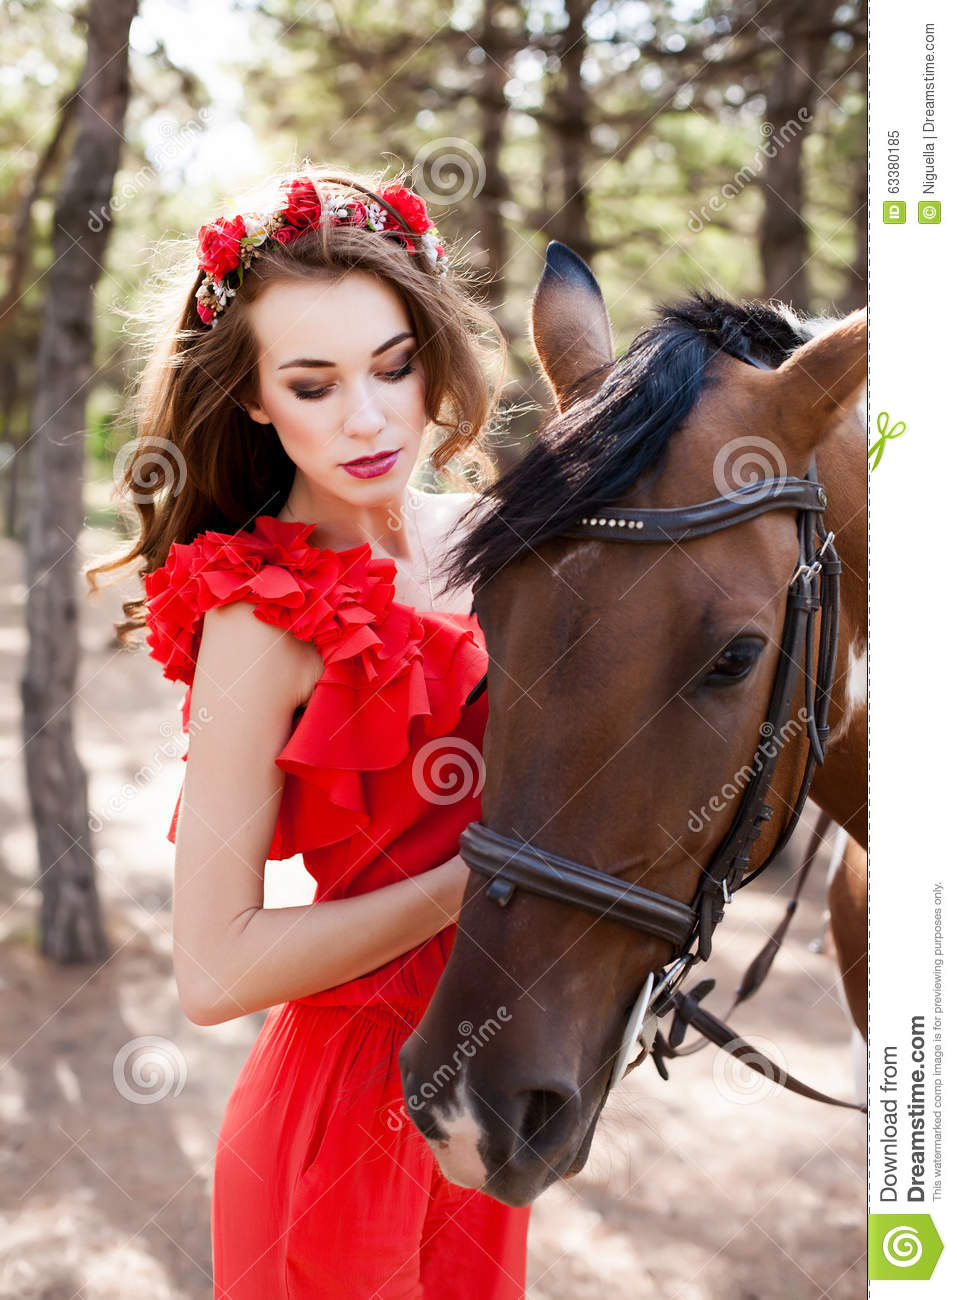 Beautiful Young Lady Wearing Red Dress Riding A Horse At